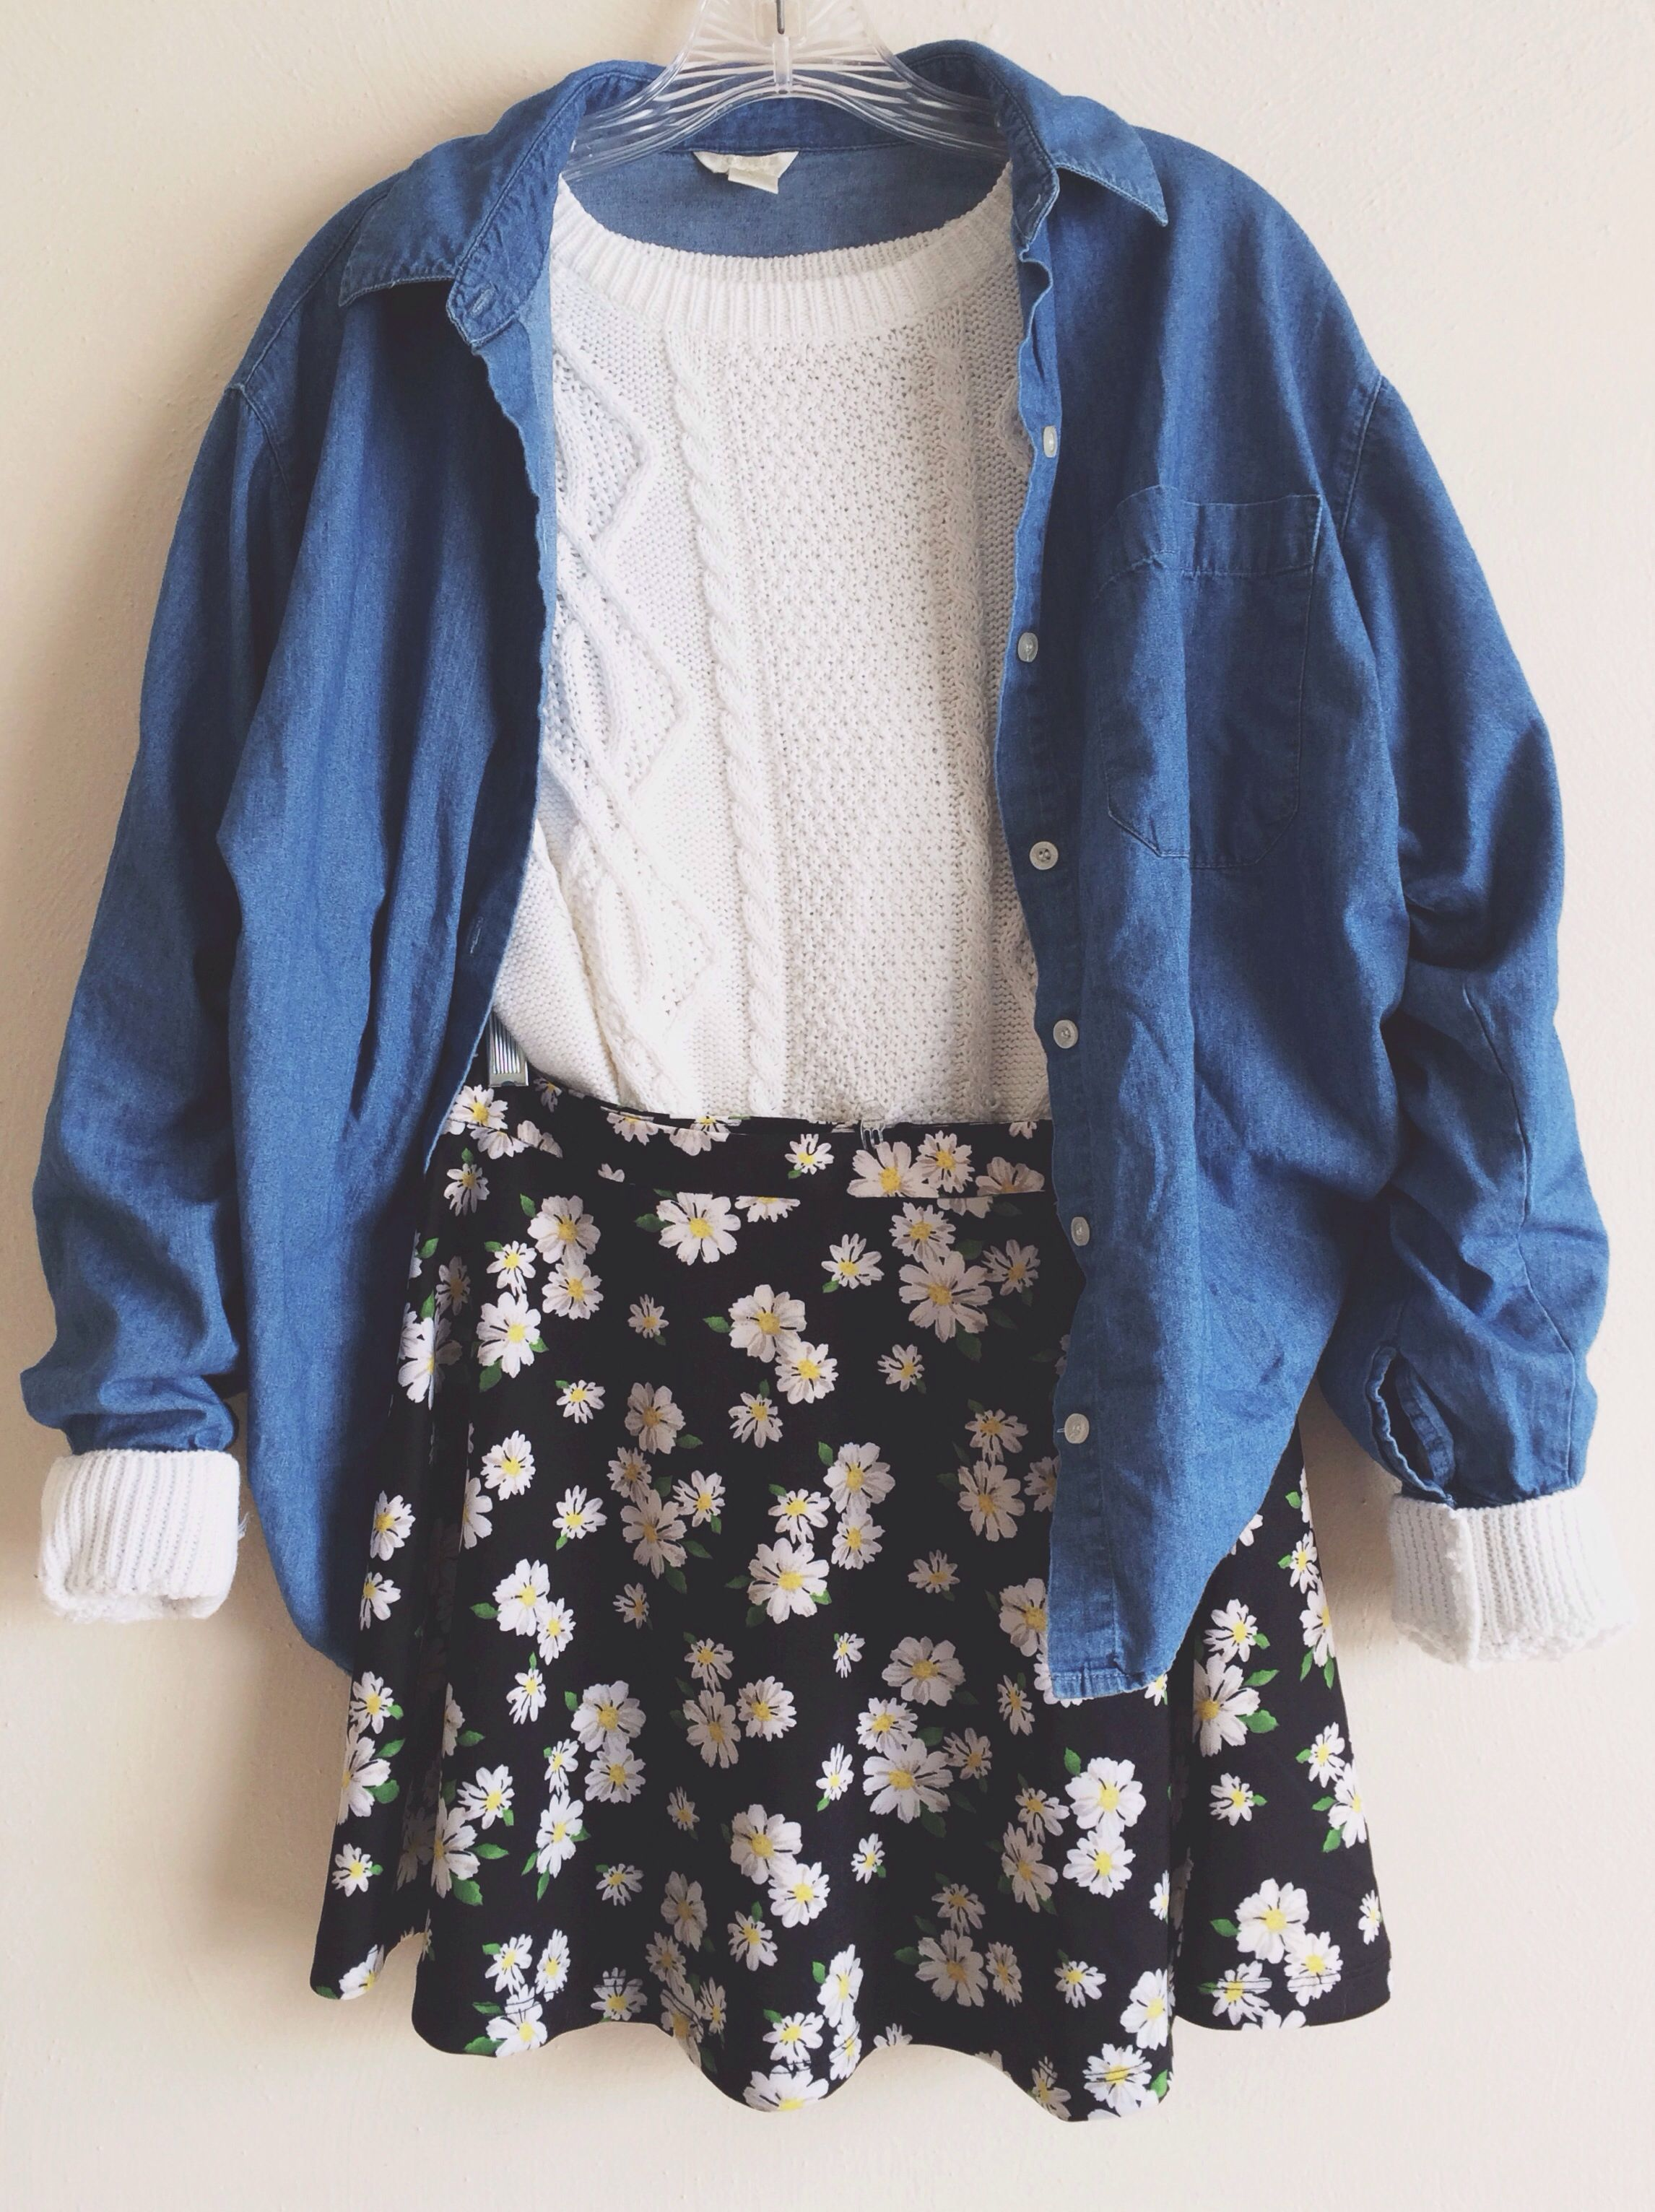 Forever21 skirt, sweater, and jacket